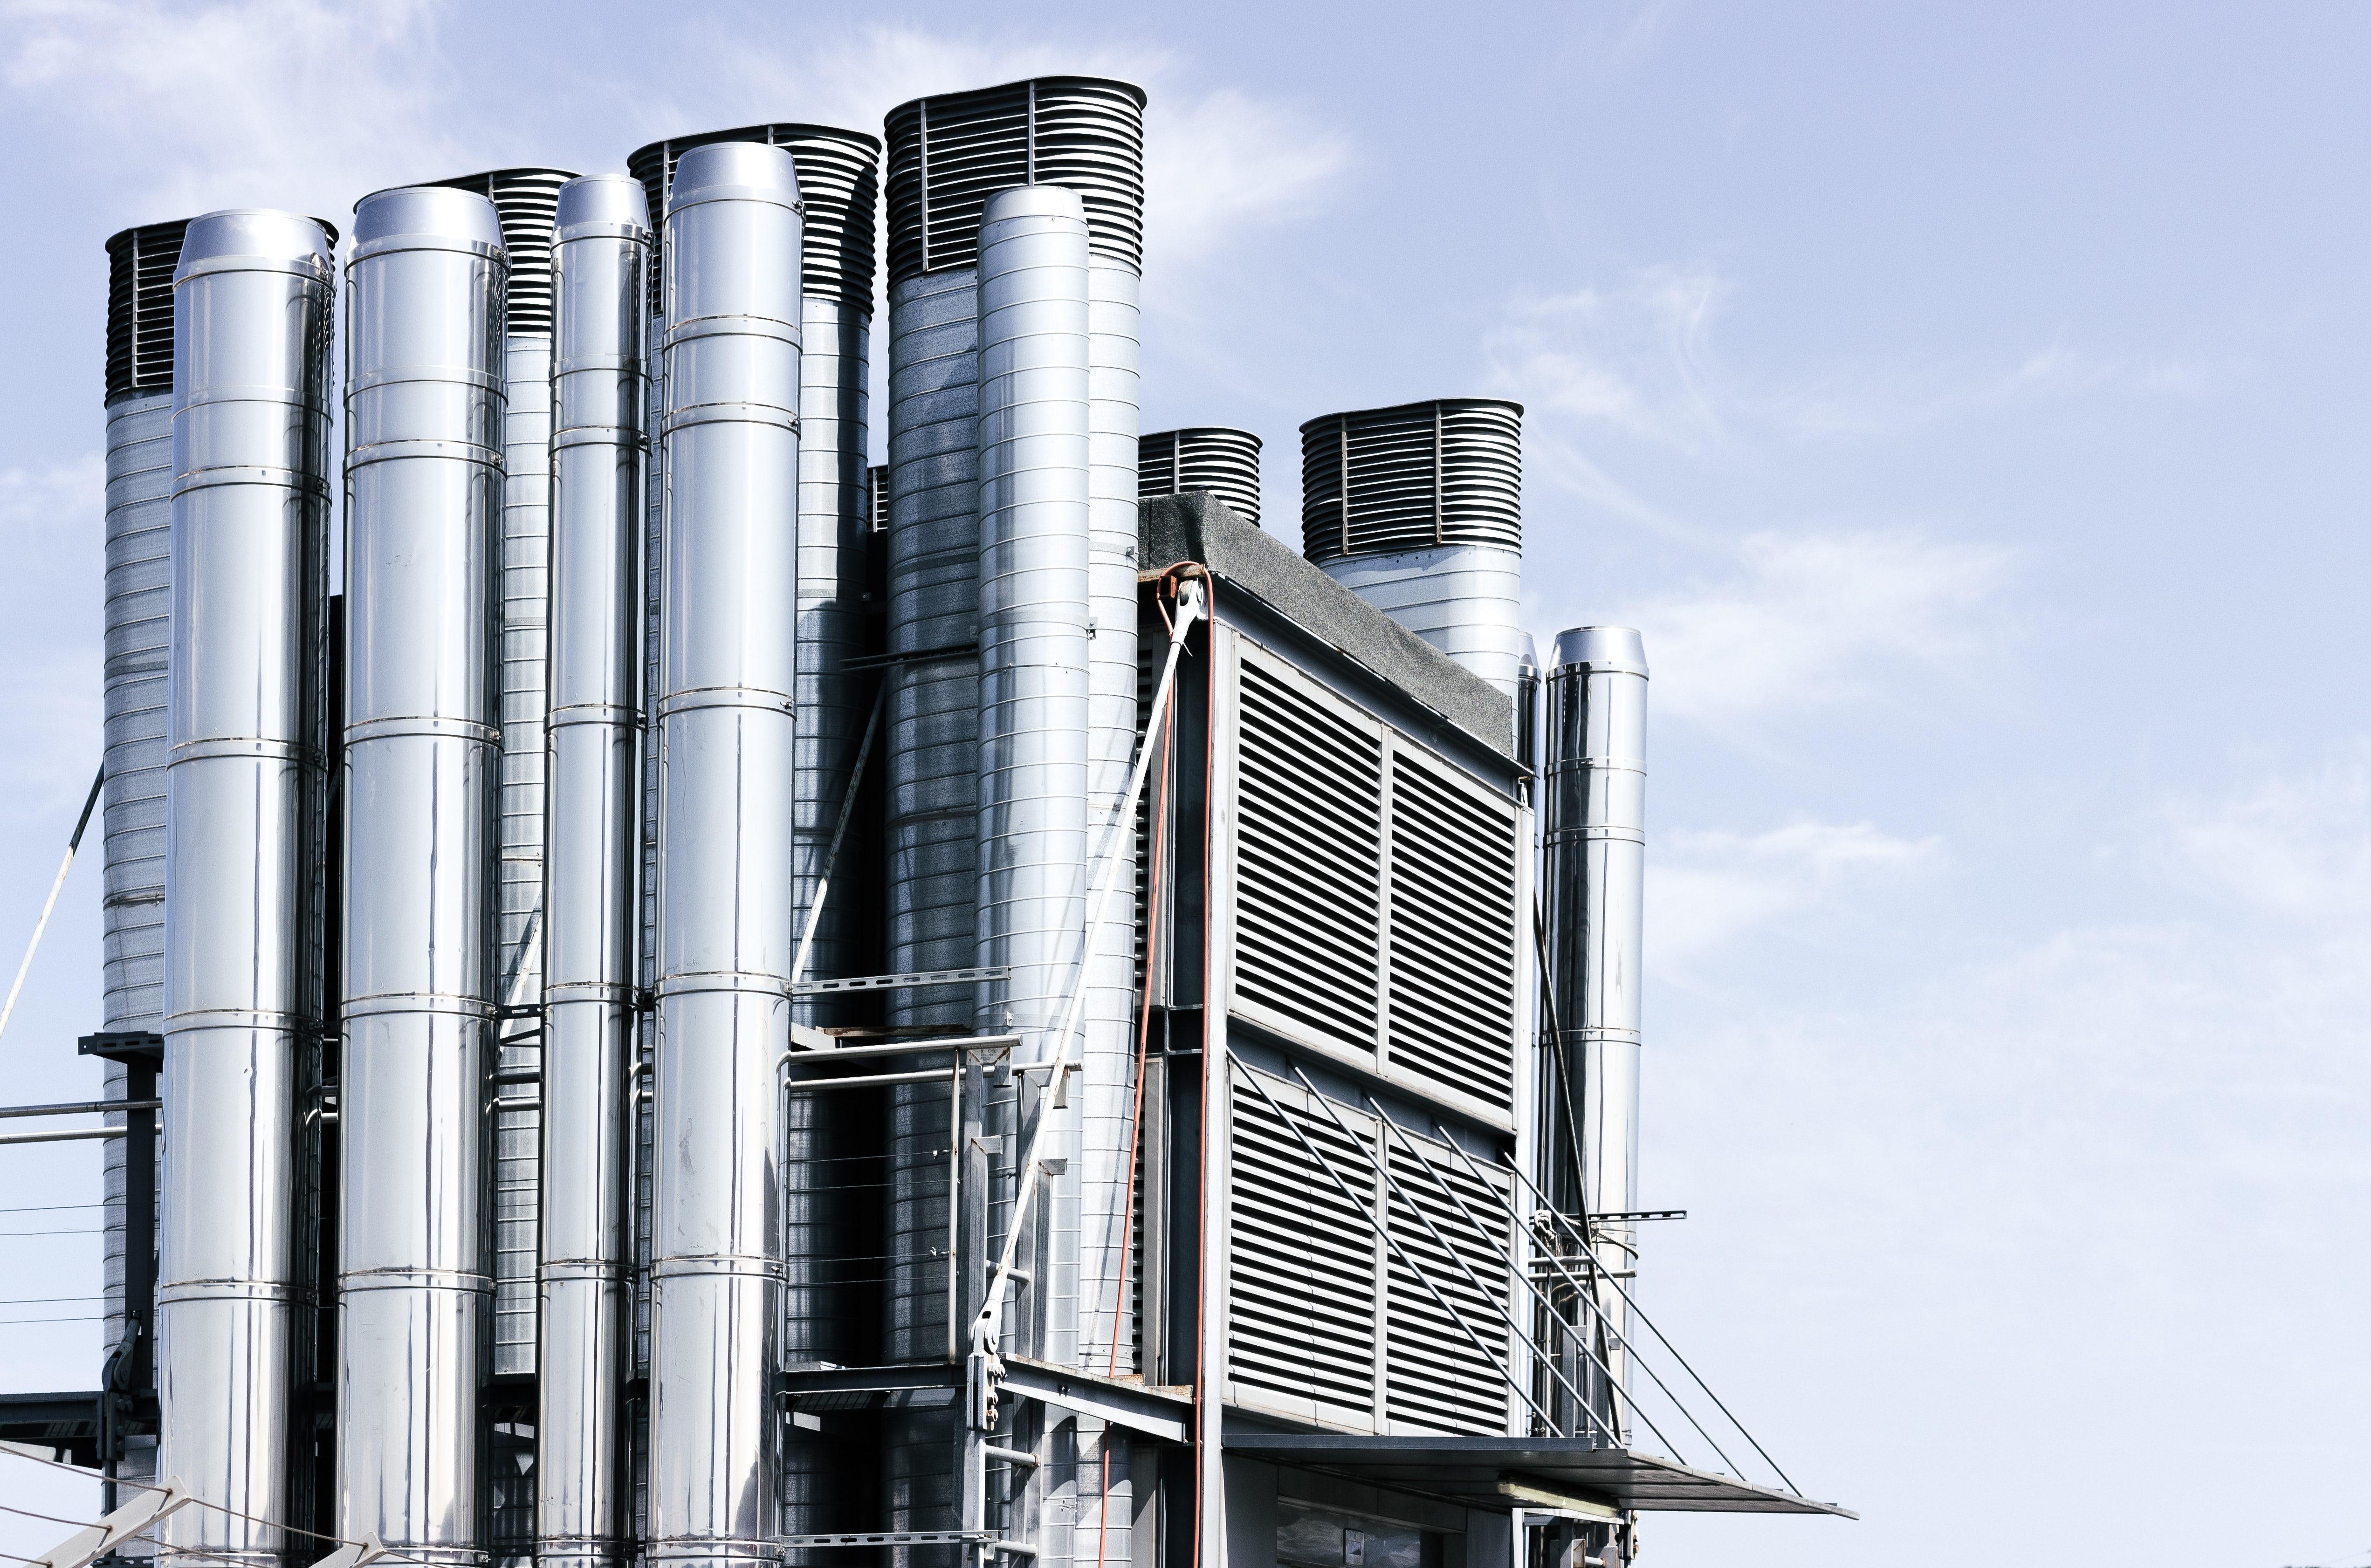 photo of grey and black industrial buildings